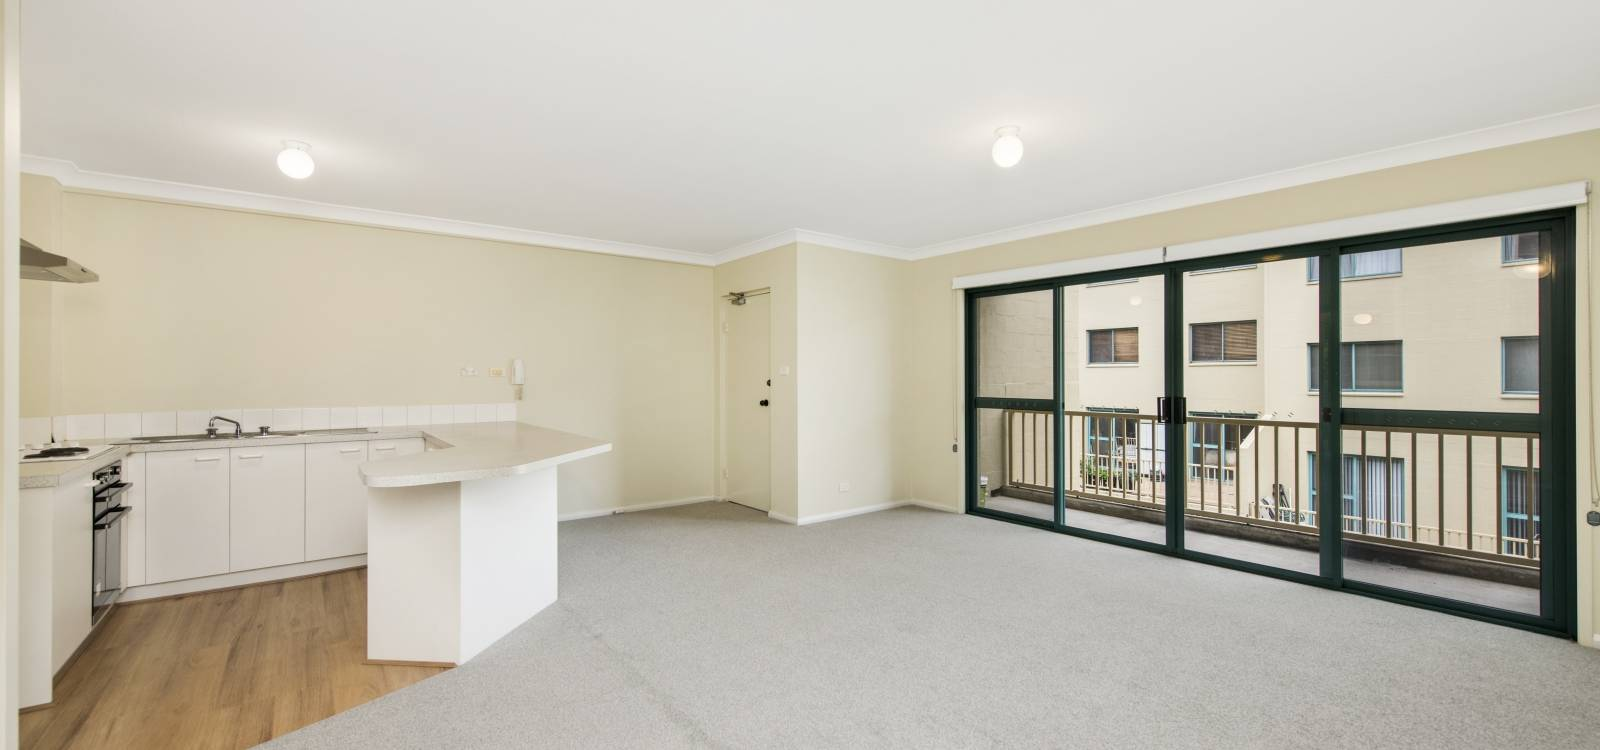 64/53 Mcmillan Crescent GRIFFITH, ACT 2603 - photo 1